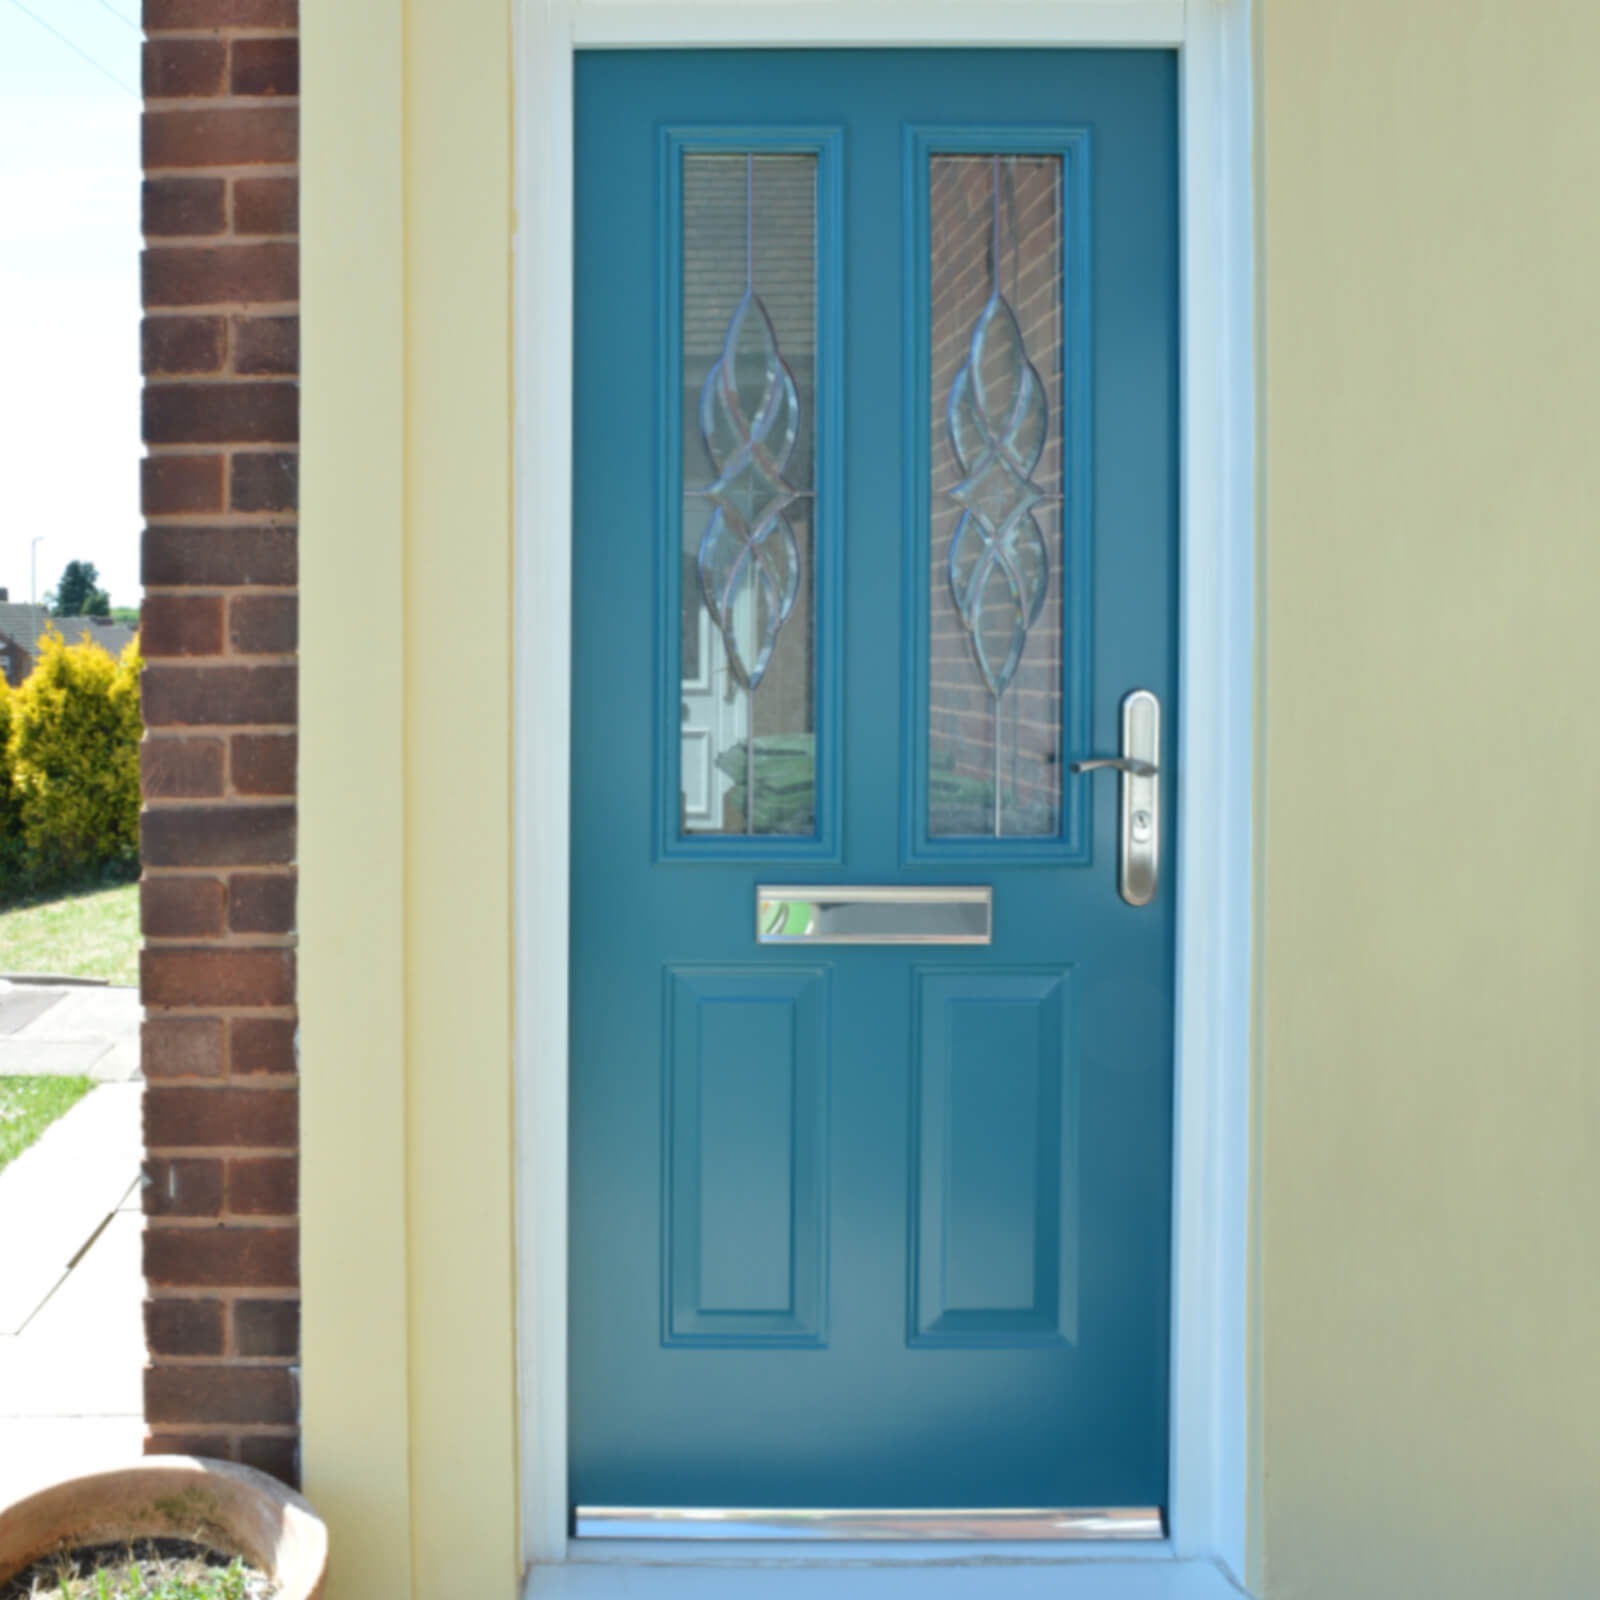 Turquoise traditional front door with patterned glass